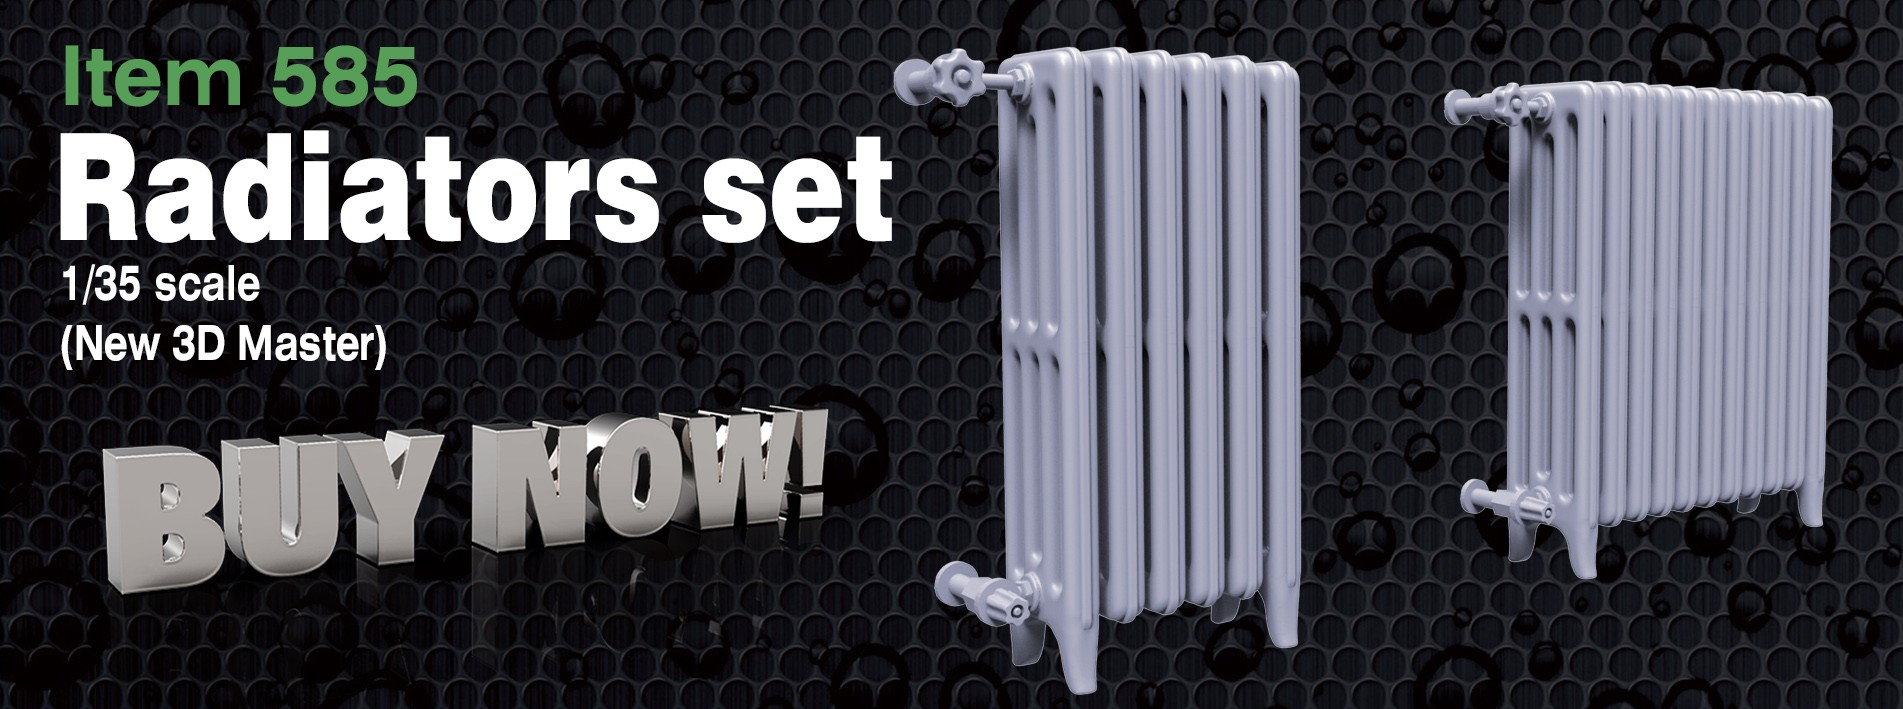 Radiators set